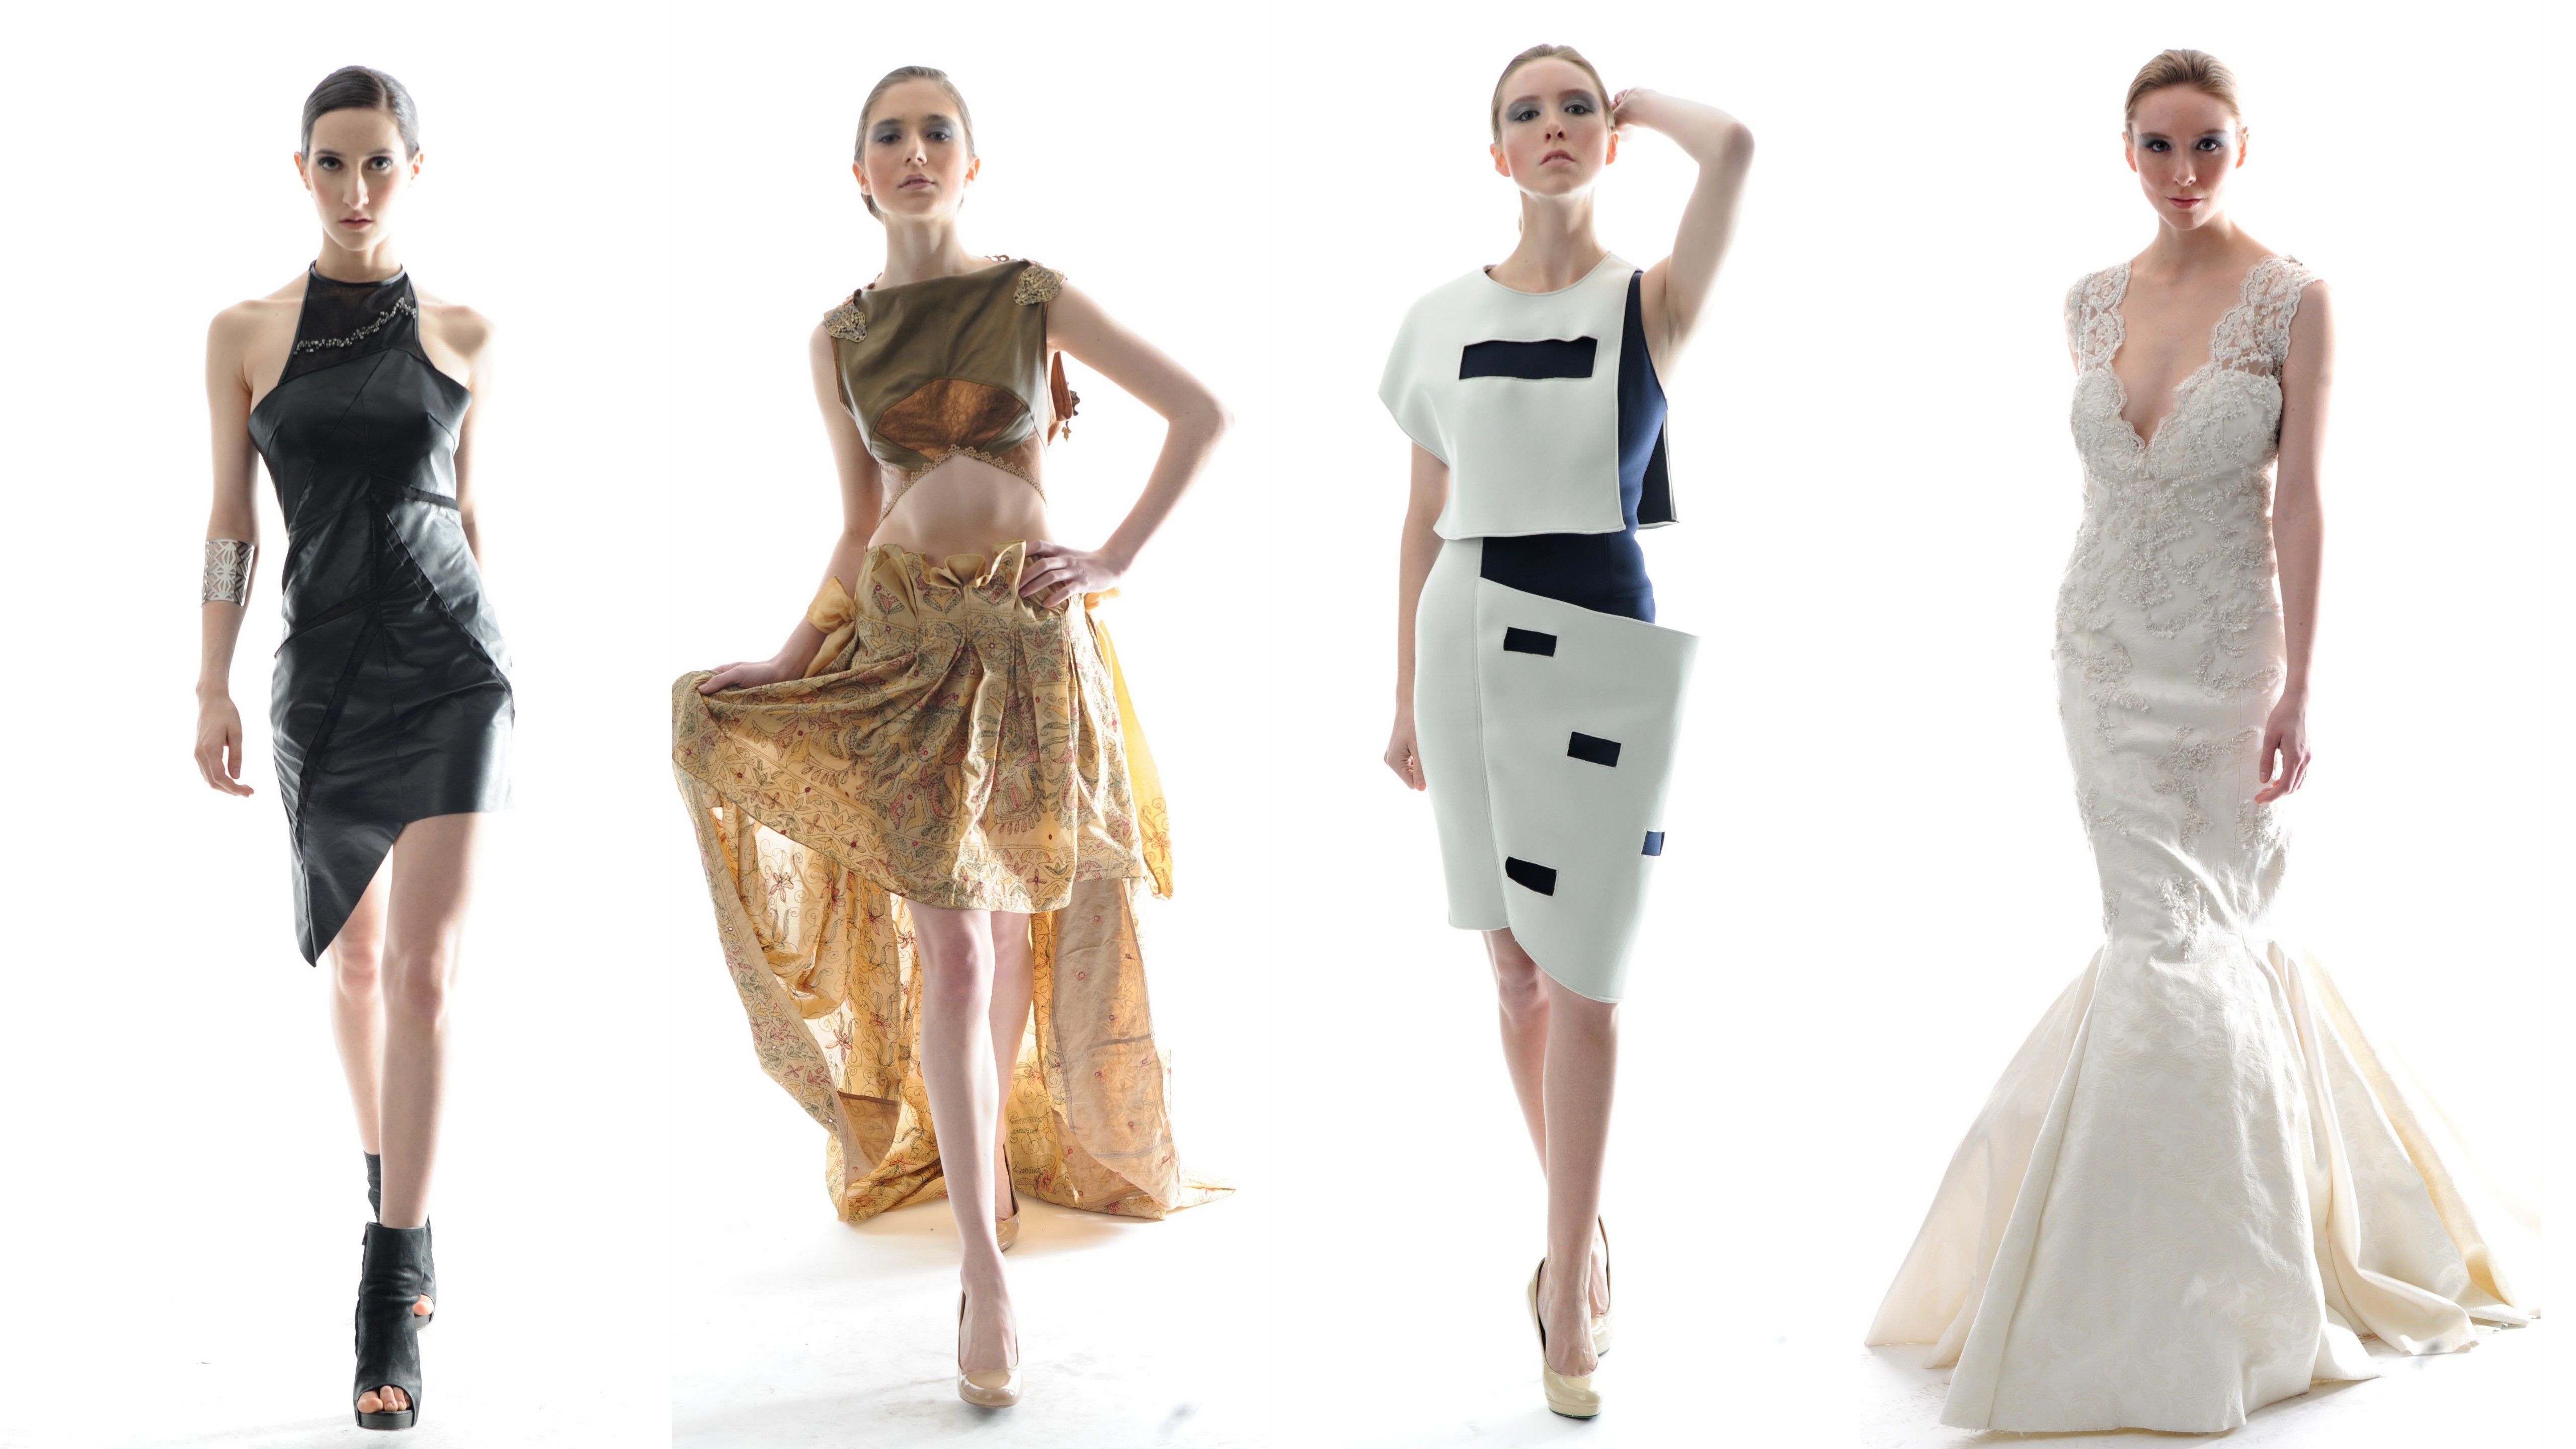 Boston Fashion Design Group